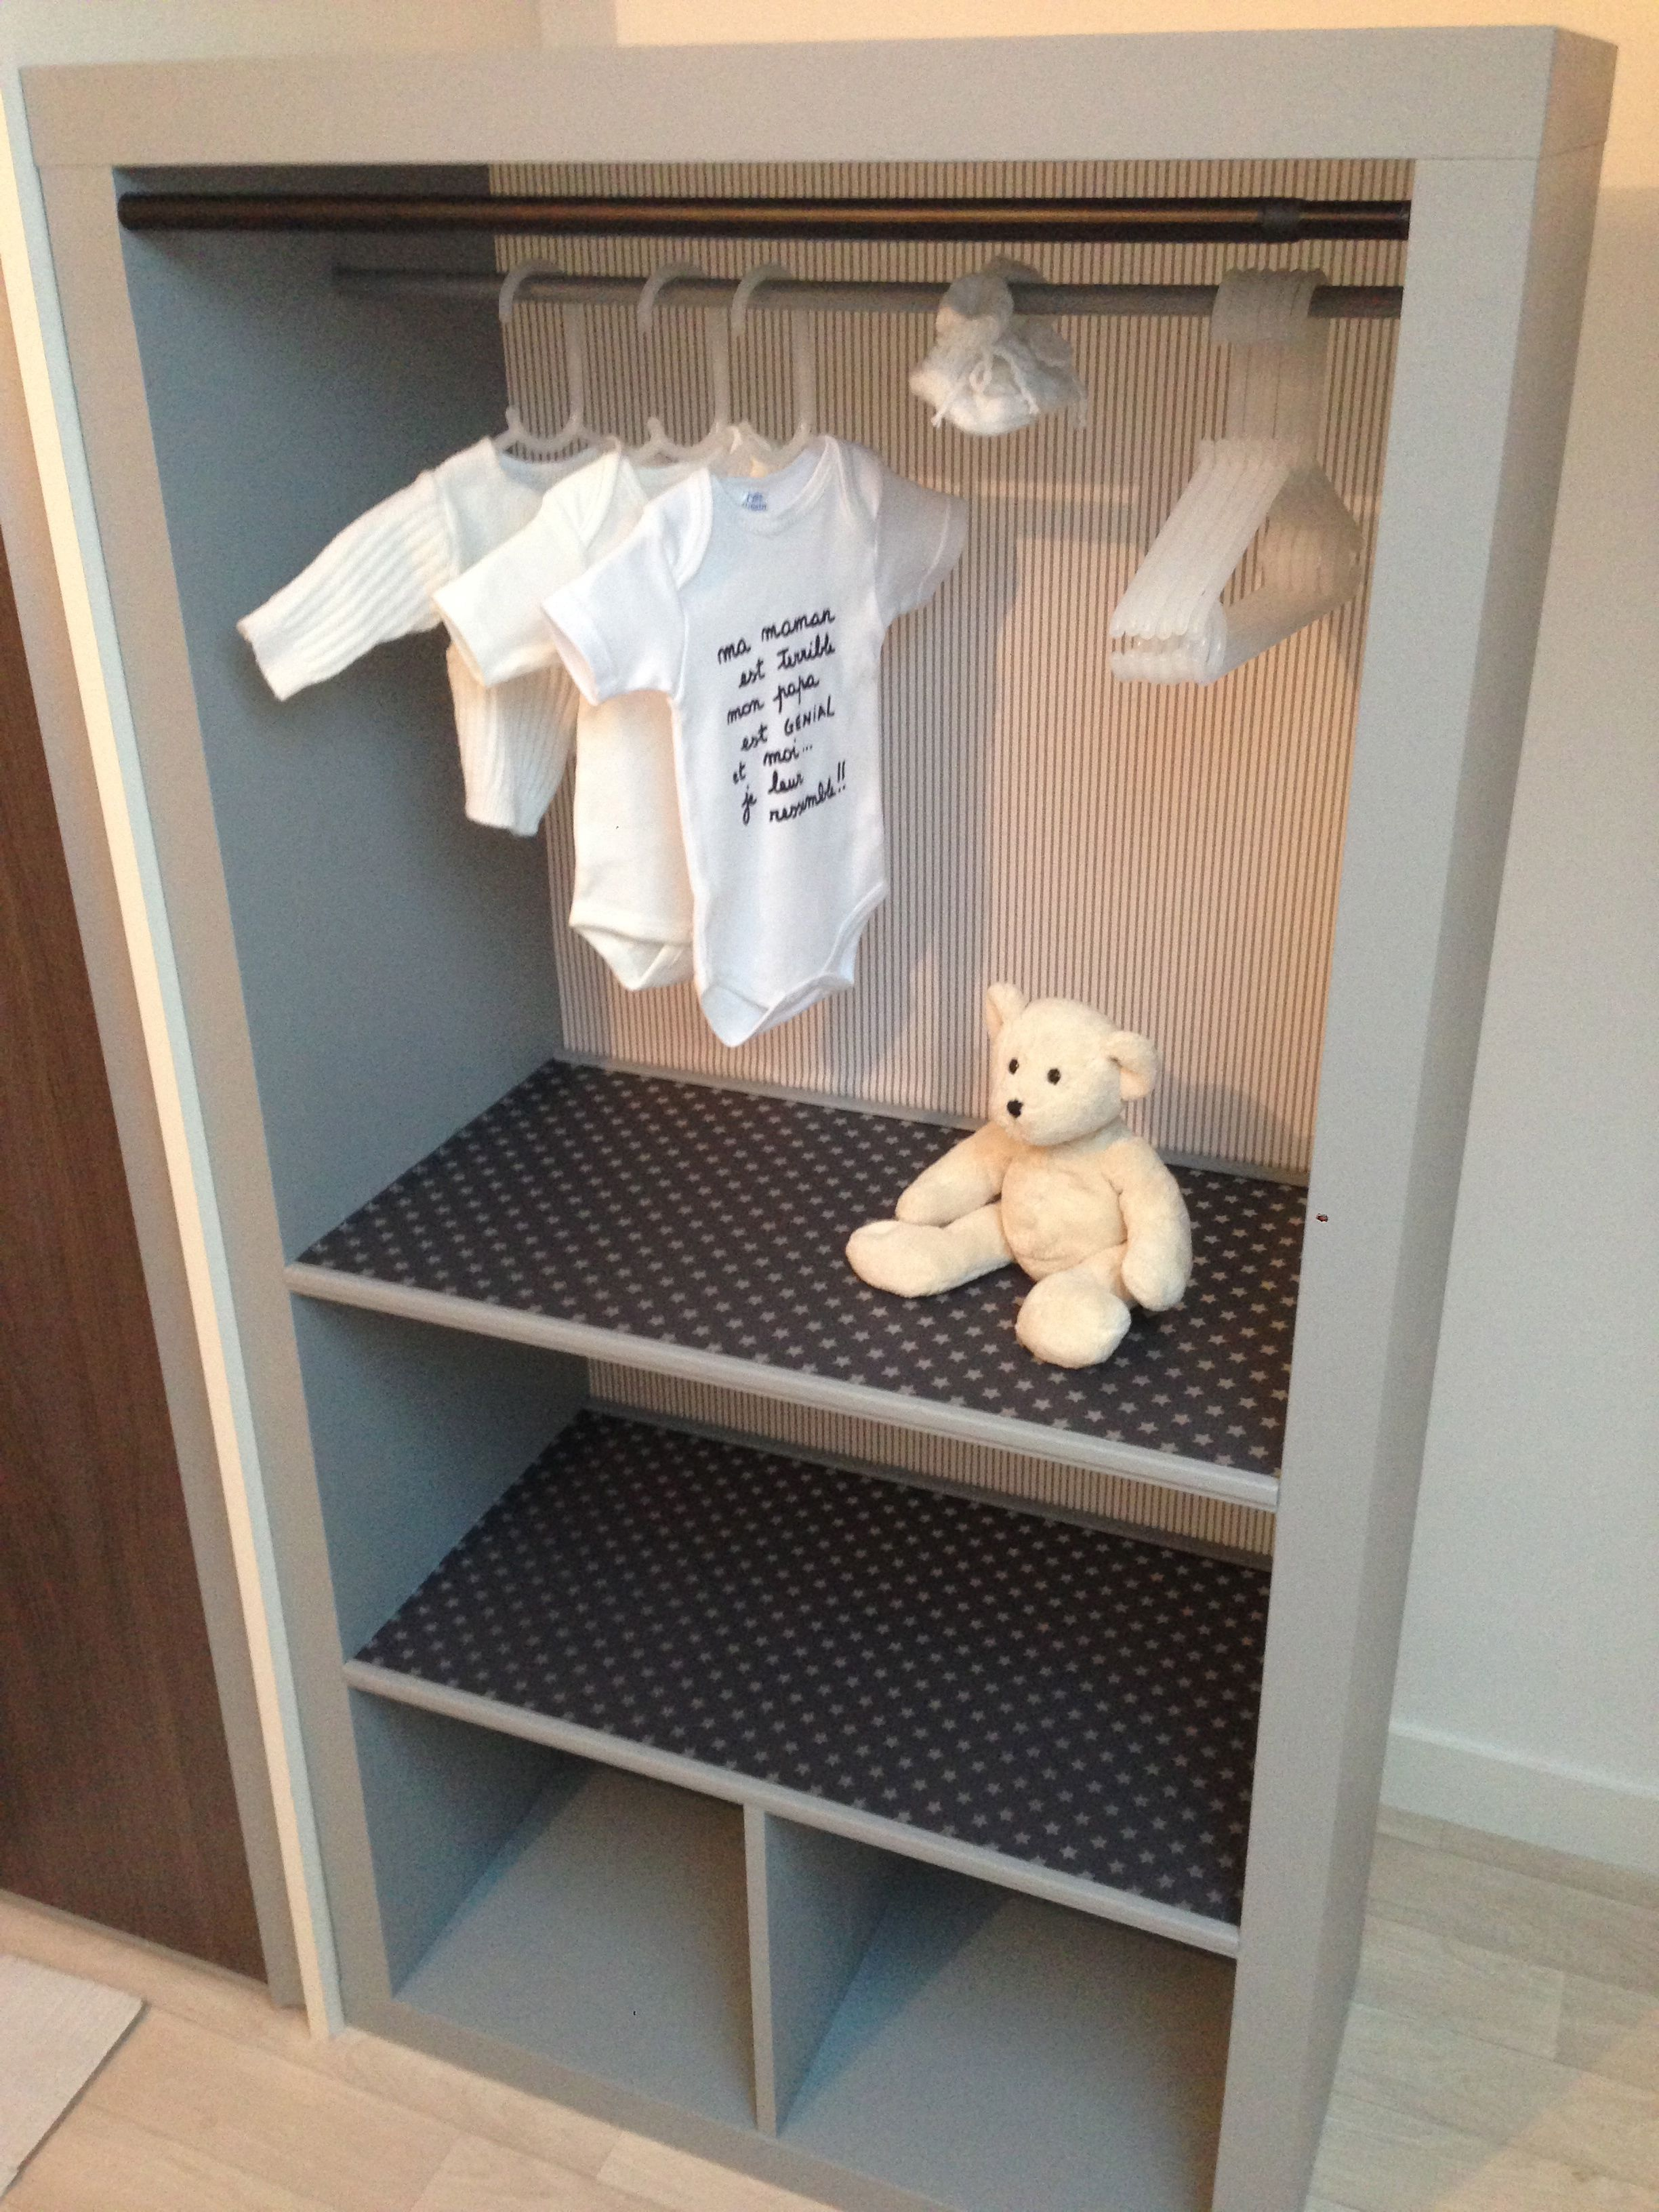 cr ation d 39 un dressing pour enfant partir rangement pinterest ikea hack room and babies